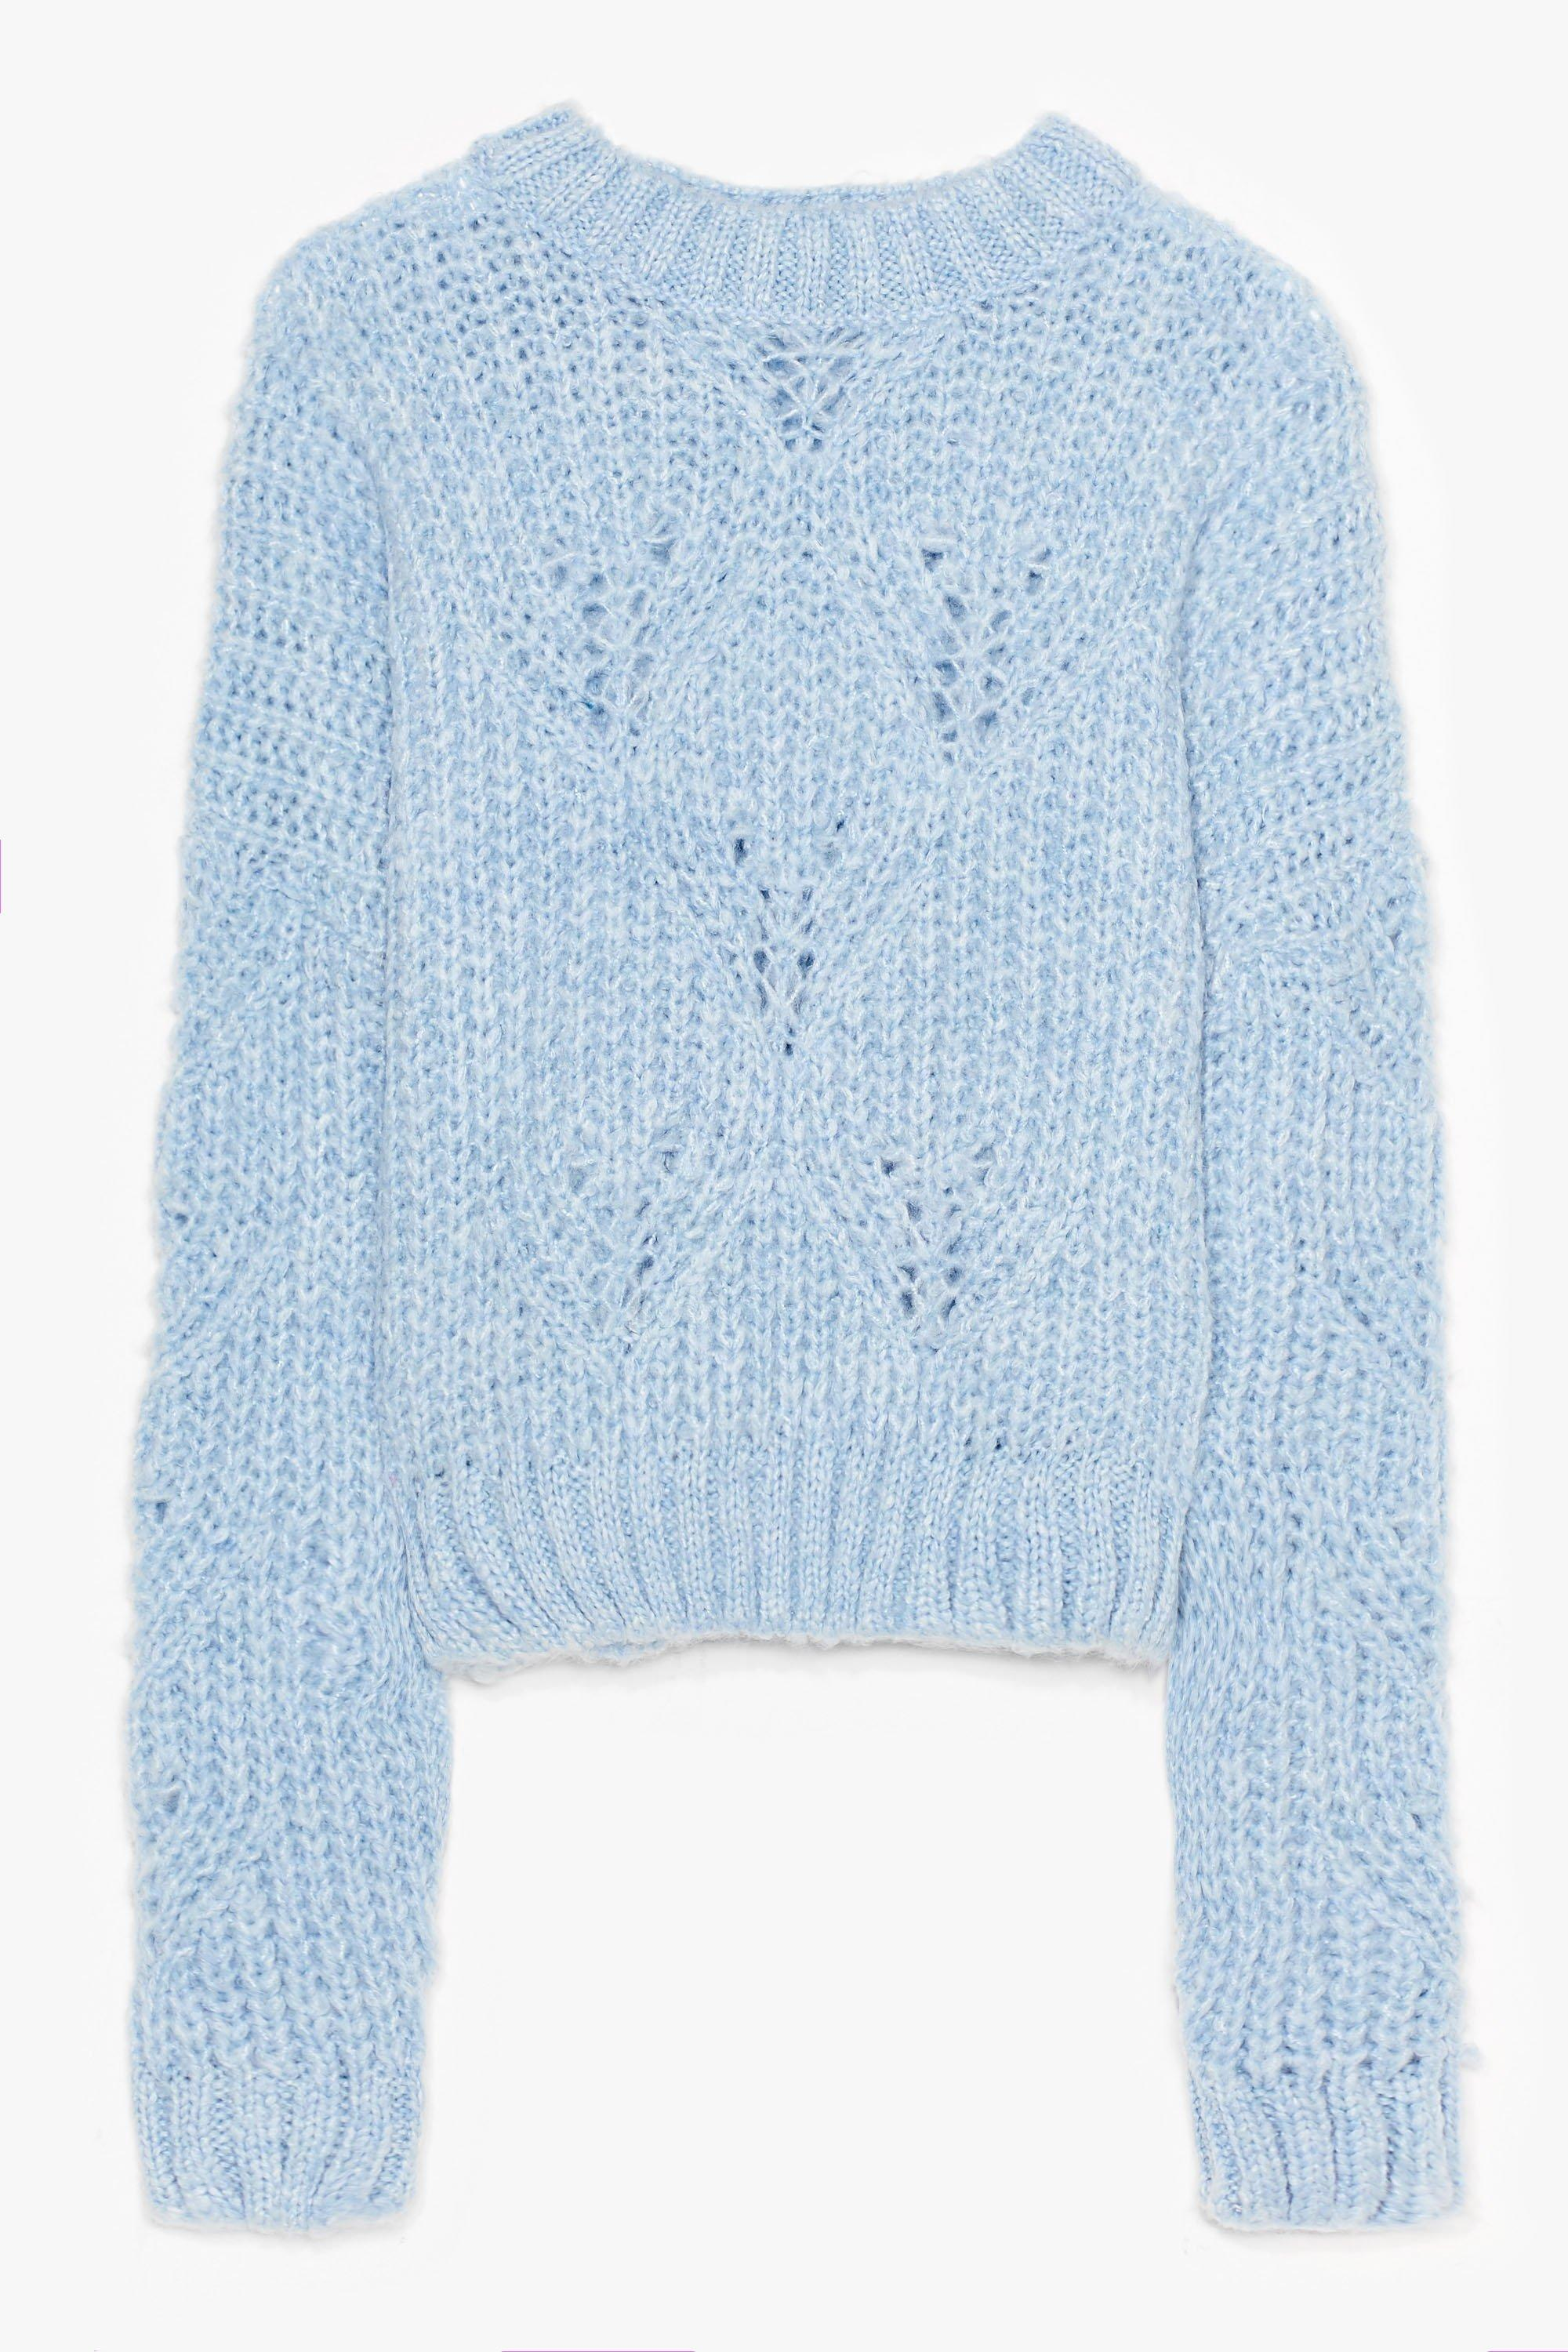 Keep Knit Simple Plus Cable Knit Sweater 8